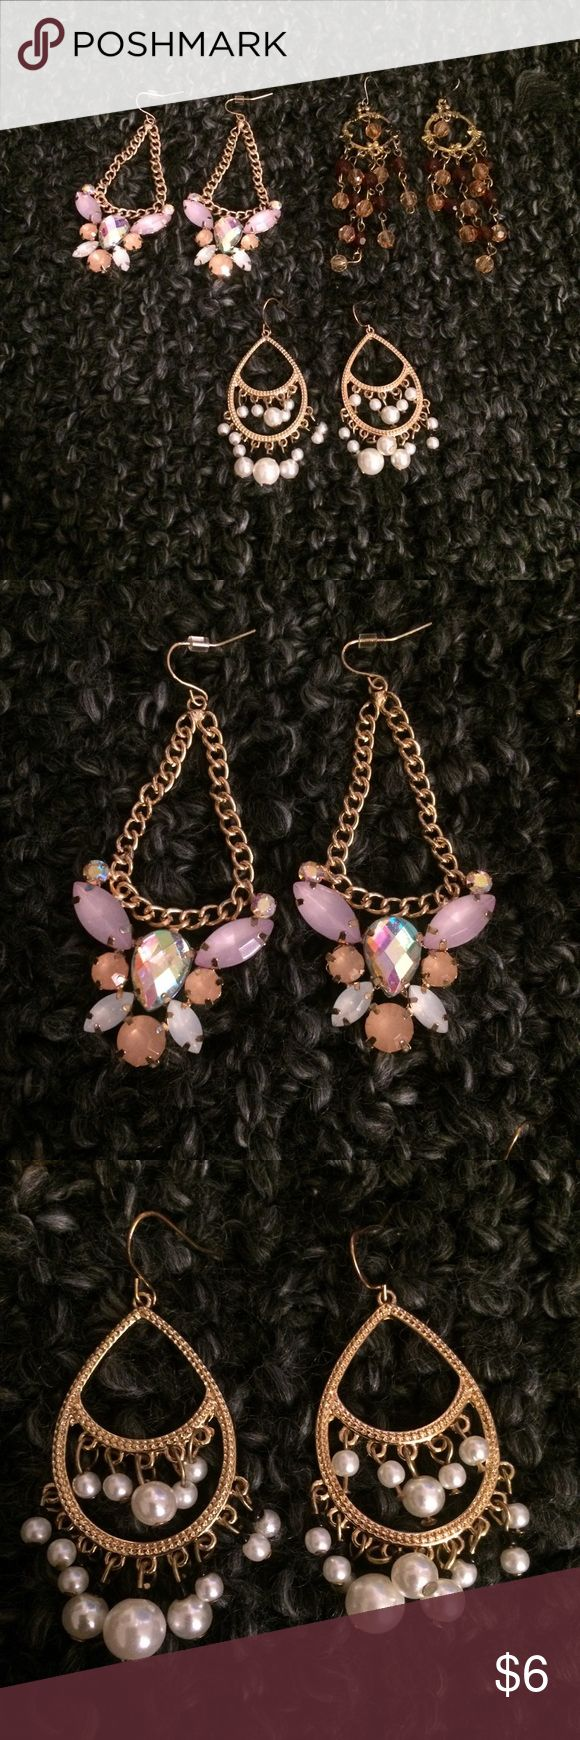 Lot of 3 Chandelier Earrings - EUC. Worn a few times, just downsizing my enormous earring collection! - Super cute pink rhinestone/gold chandelier earrings - Burgundy & light orange chandelier earrings with black distressing on gold hoops. Bought them for a pirate Halloween costume! - Gold chandelier earrings with dangling pearls accented by black beads. Classic & go with anything! Accessories